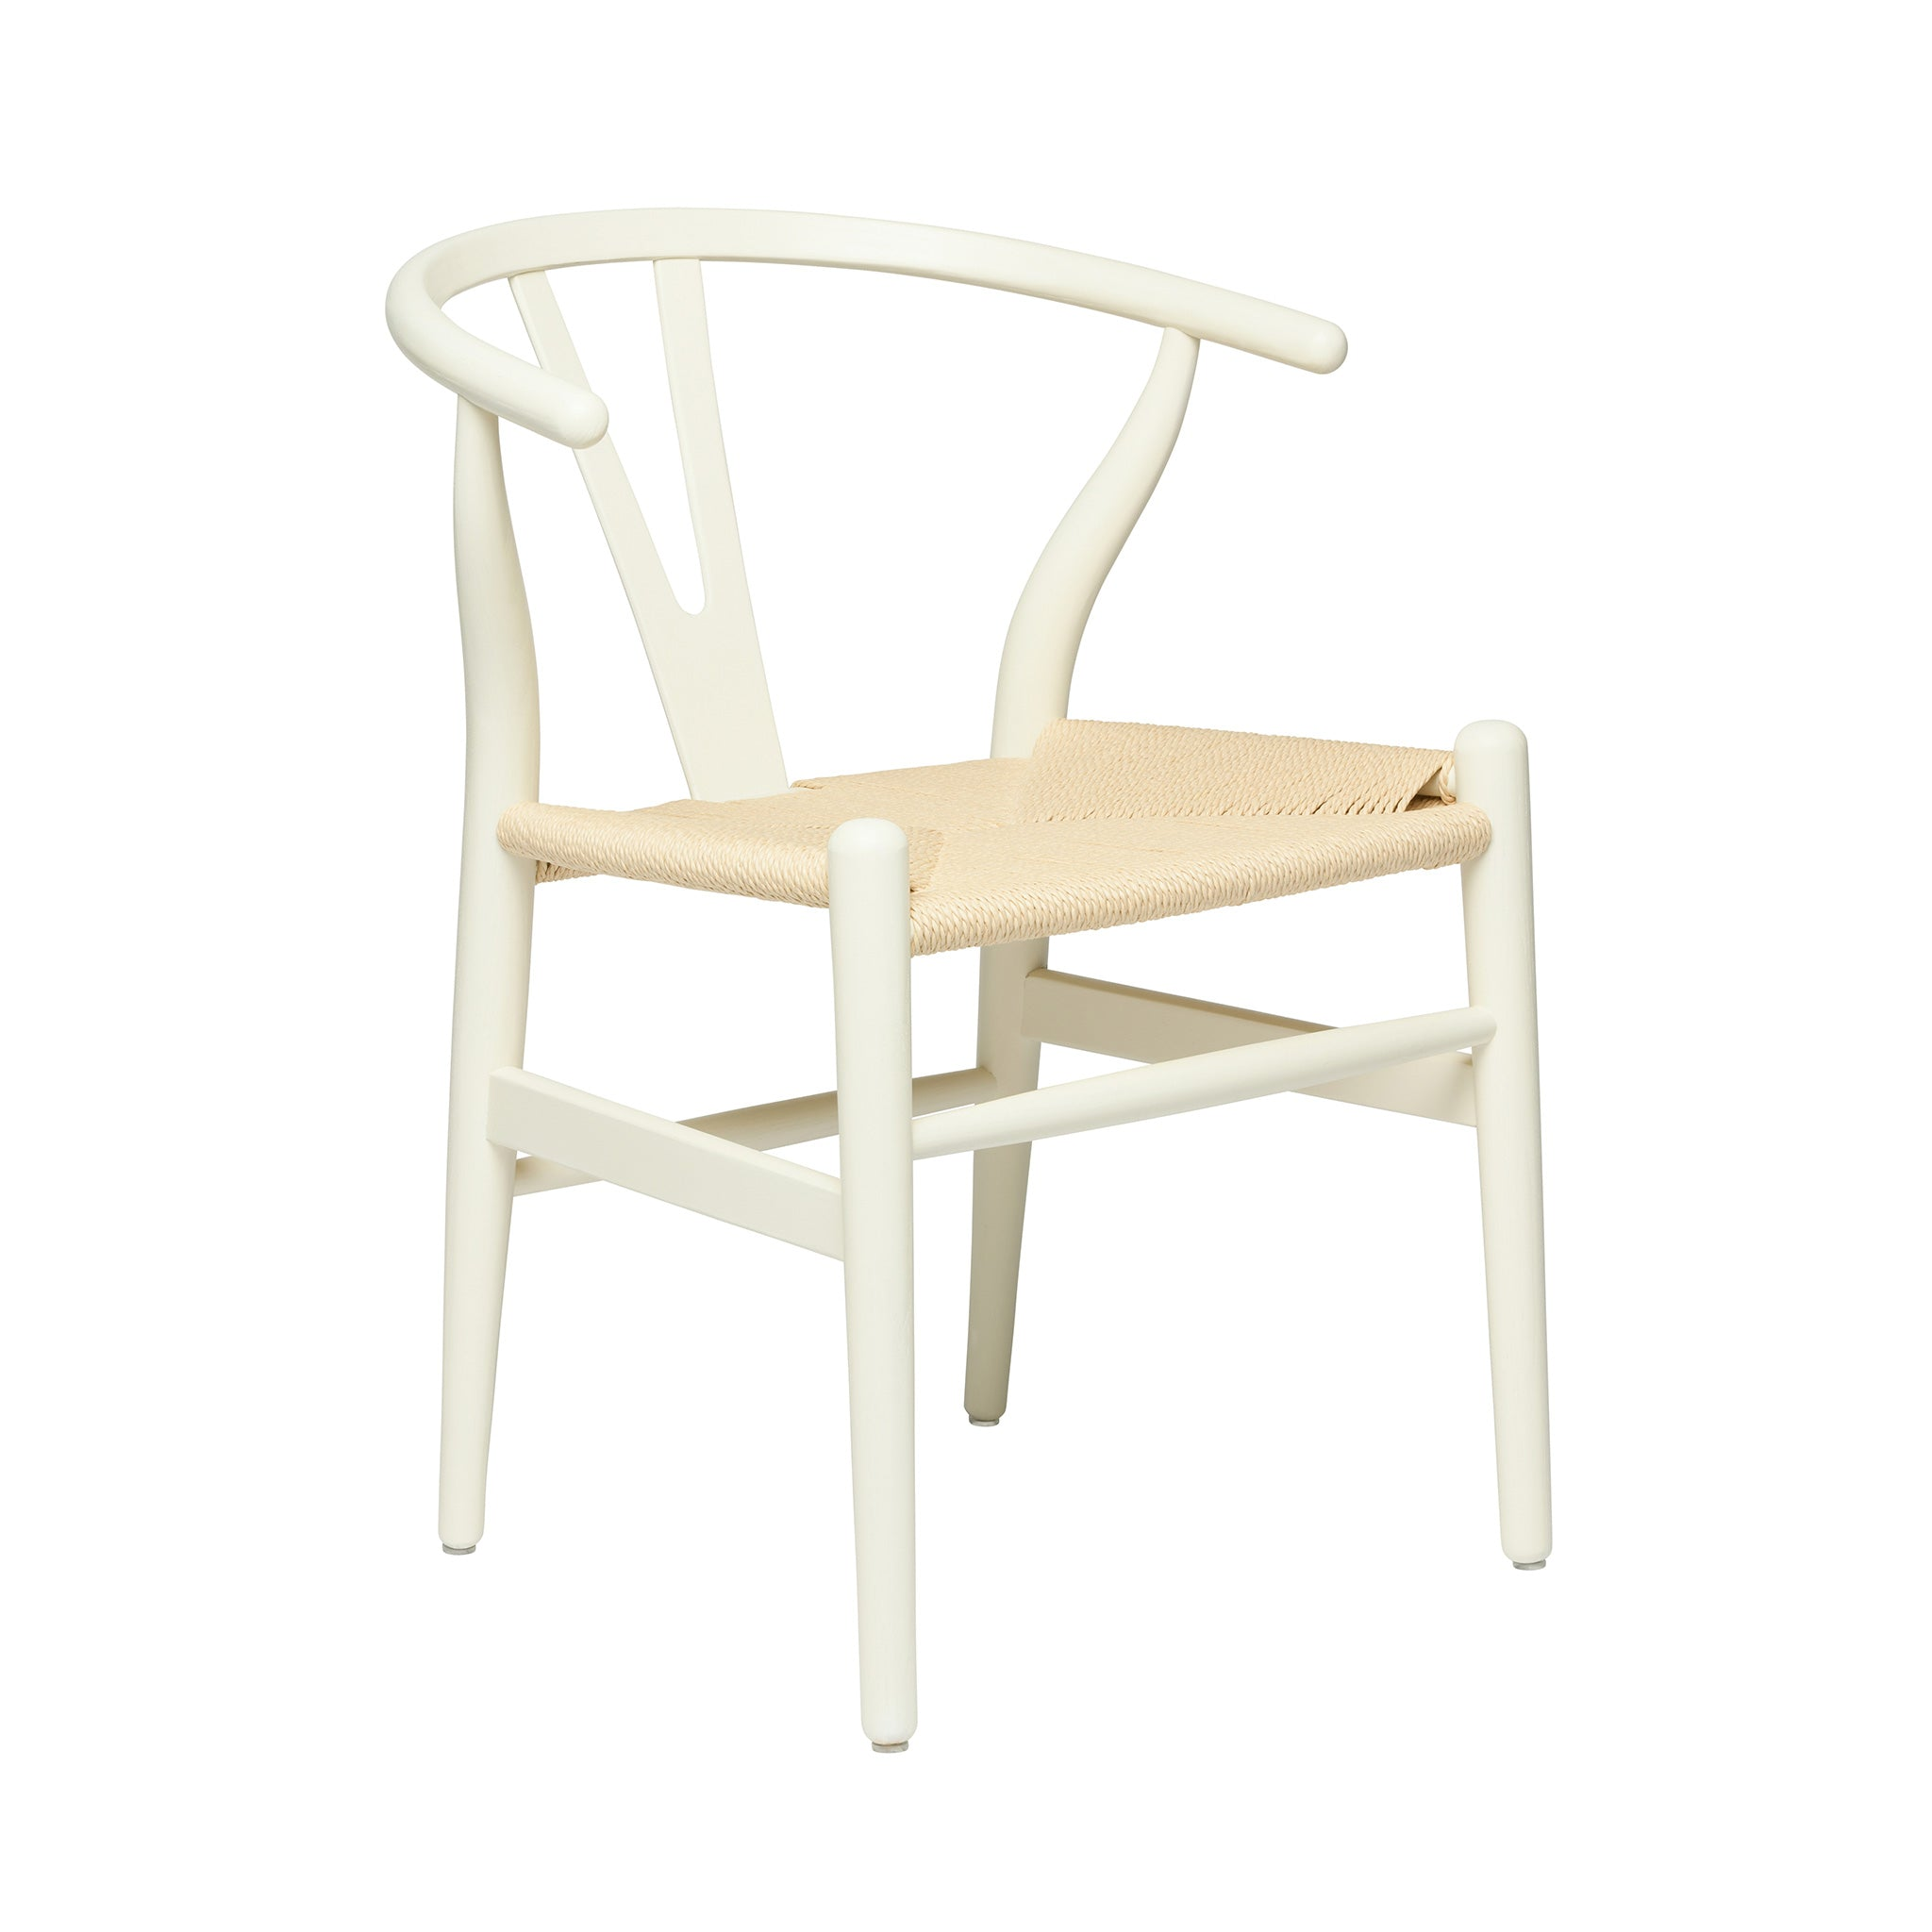 wishbone chair rustic white natural woven cord